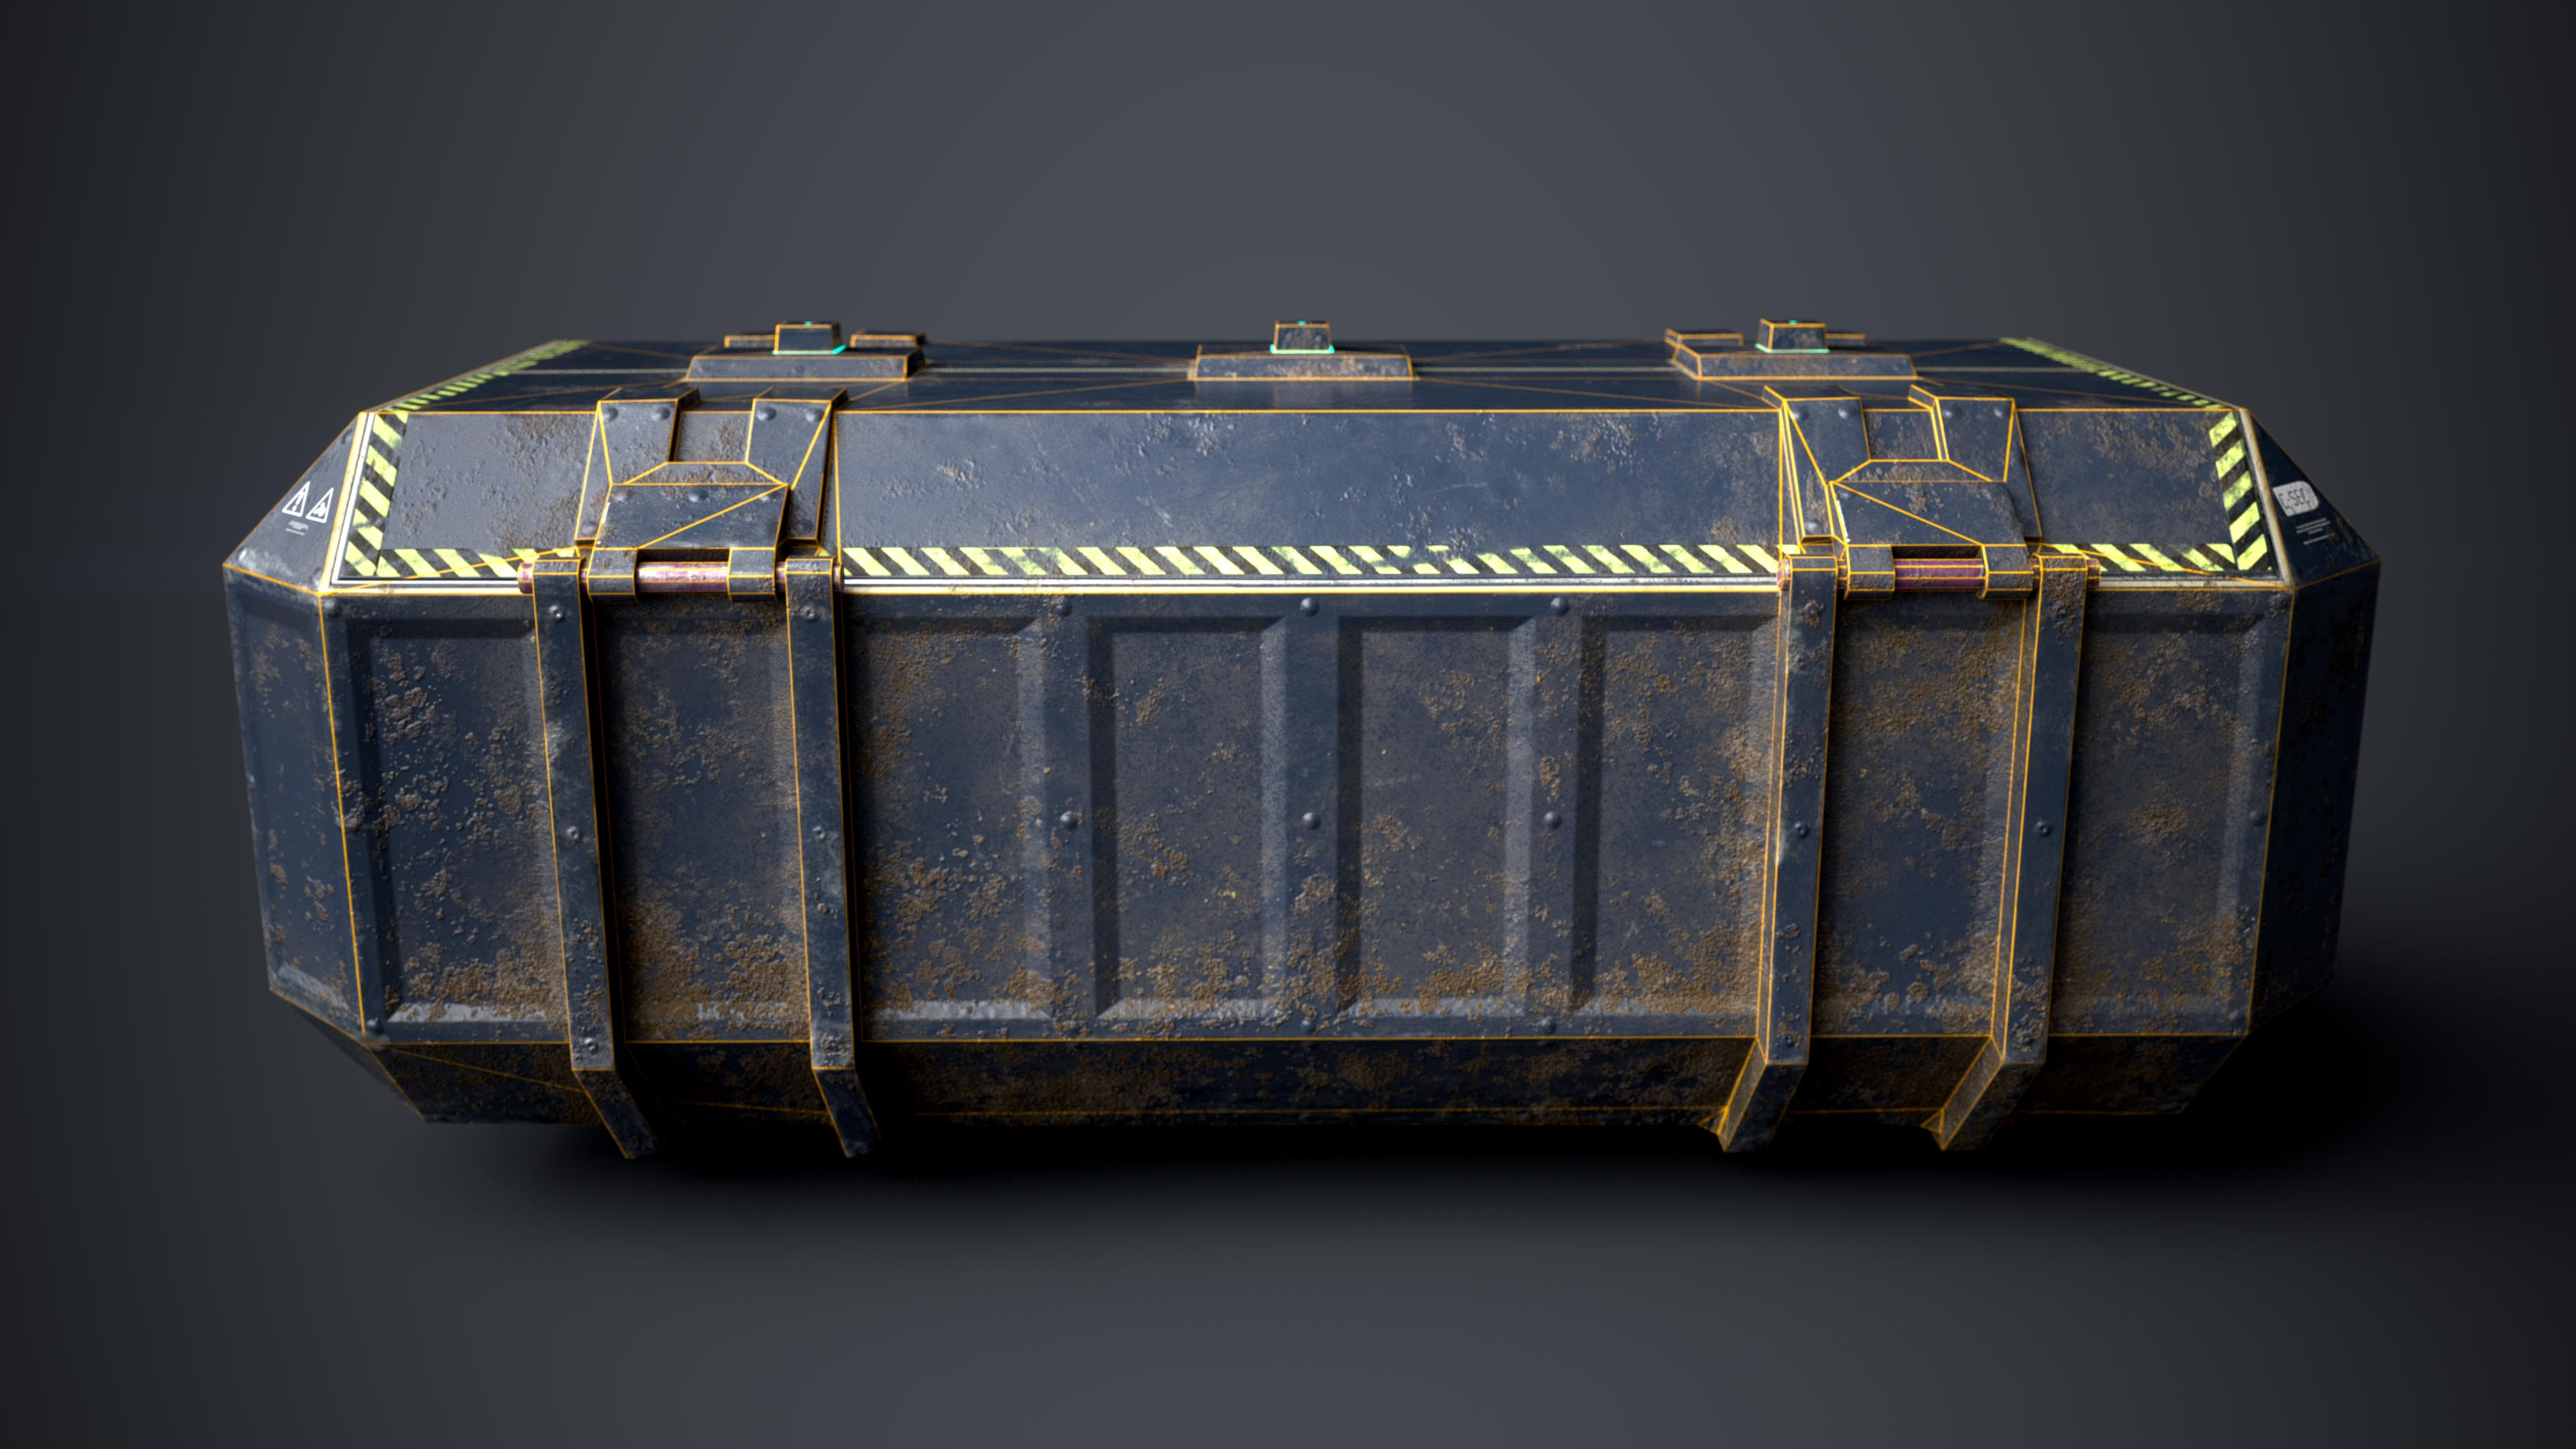 This is a side view of a 3D sci fi crate model a video game asset for futuristic game worlds. The image shows the container's polygon flow or wireframe. The 3D game object has 1098 triangles and is created by Thom Hujanen a university educated video game designer and 3D artist.